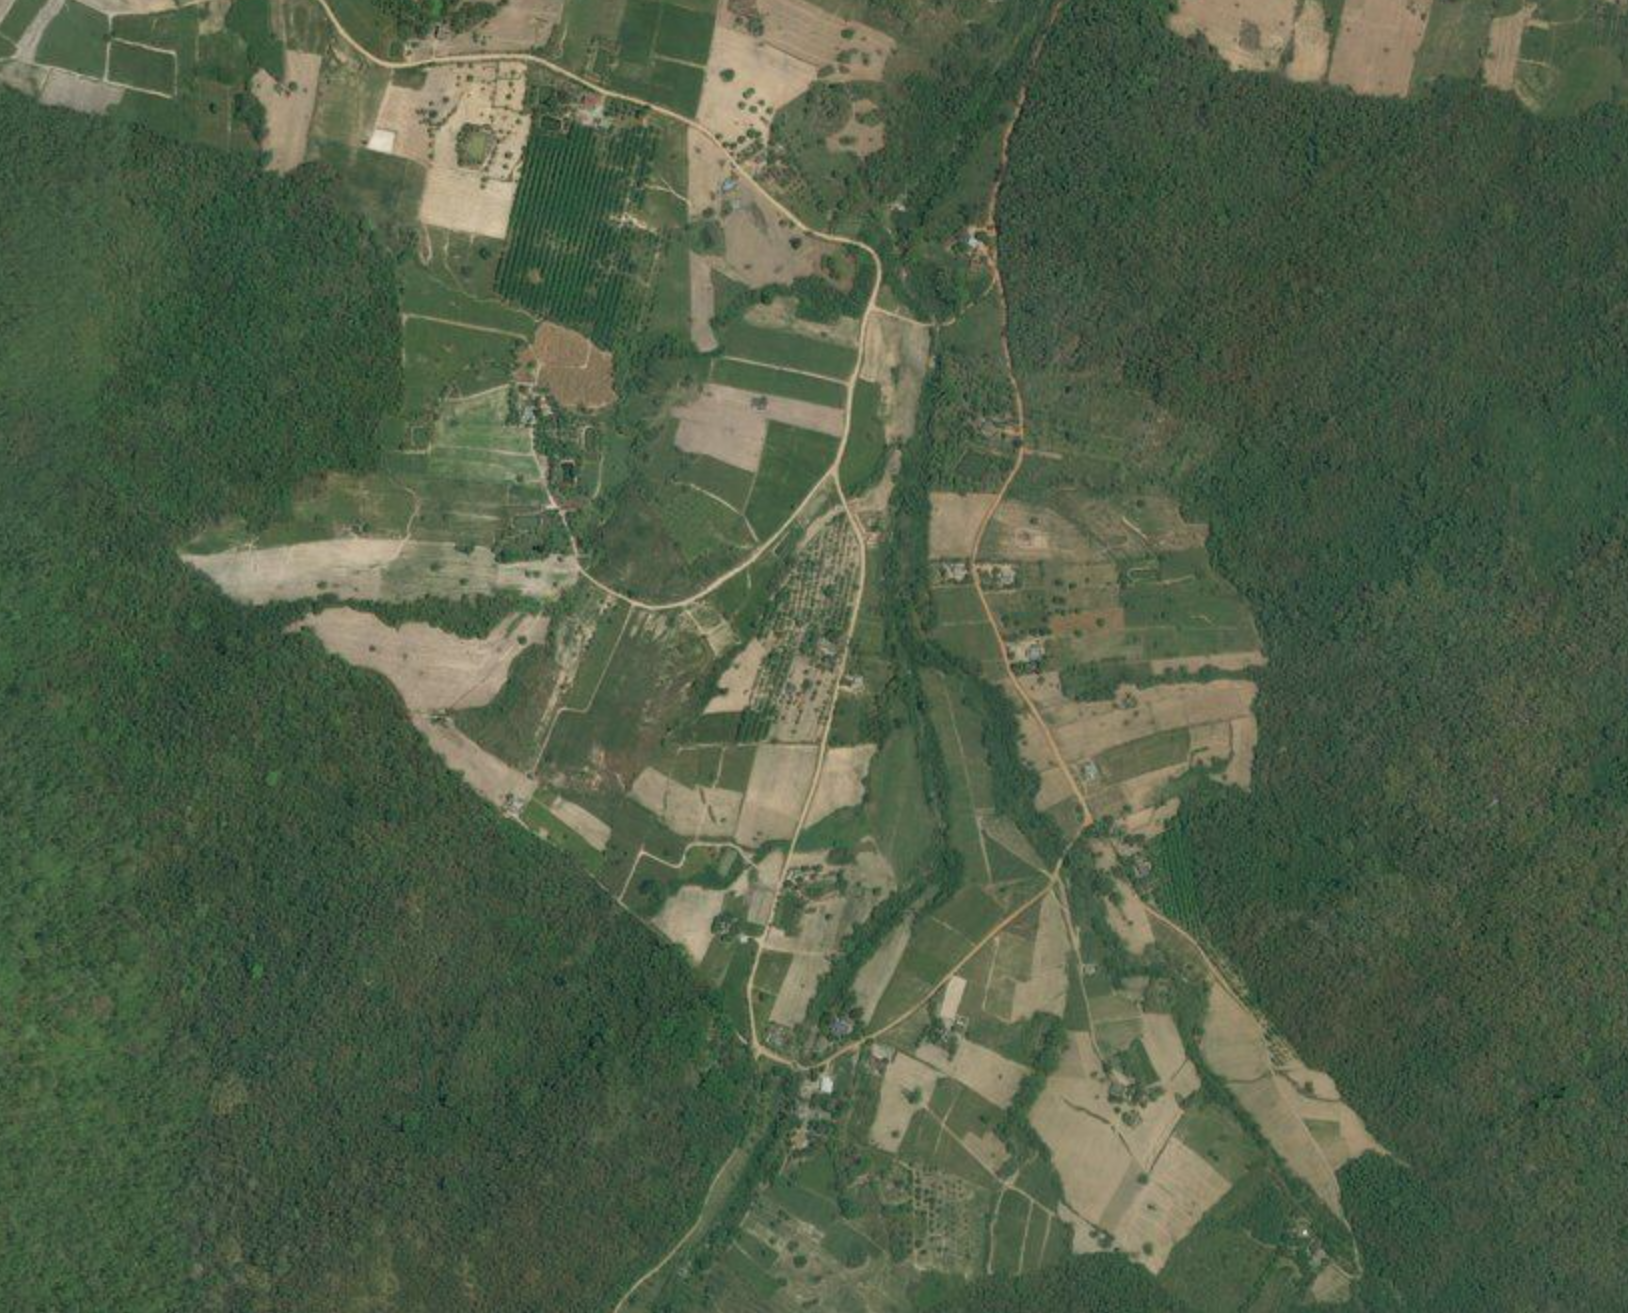 Crops surrounded by forests in Thailand.